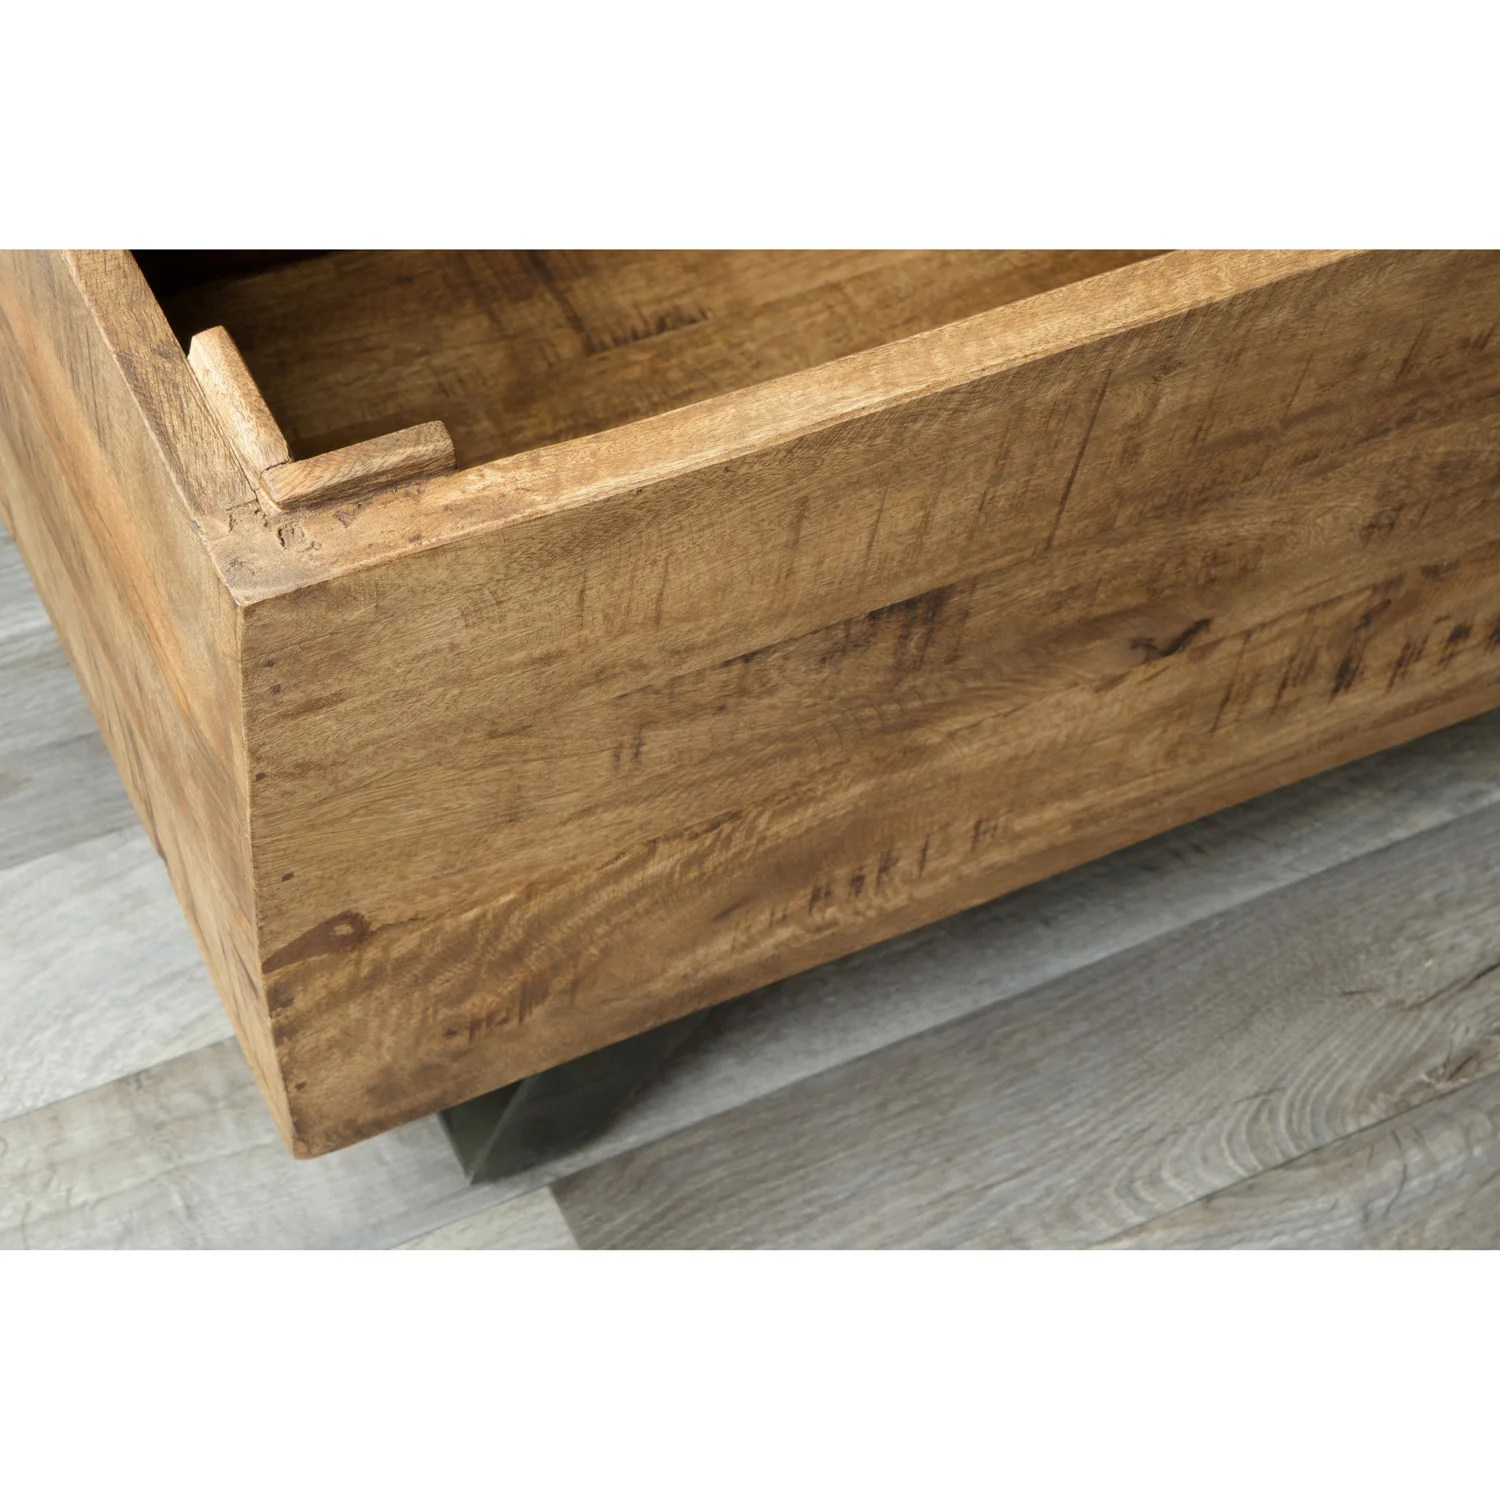 Carbon Loft Henrietta Mid Century Raw Mango Wood Storage Chest Carbon Loft Henrietta Mid Century Raw Mango Wood Storage Chest